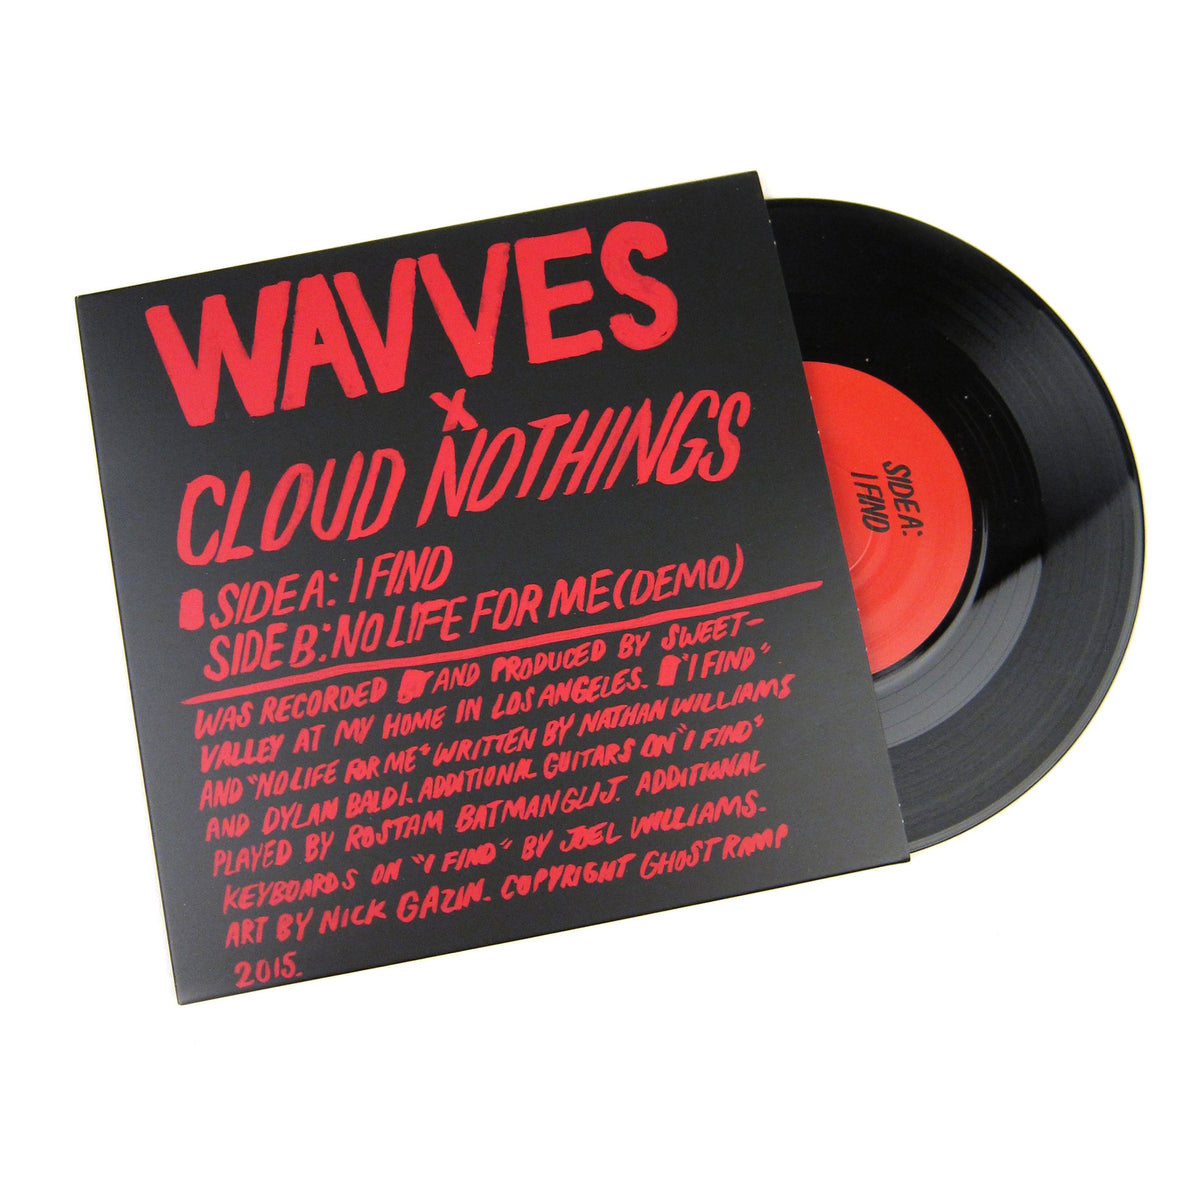 Wavves / Cloud Nothings: I Find / No Life For Me Vinyl 7""